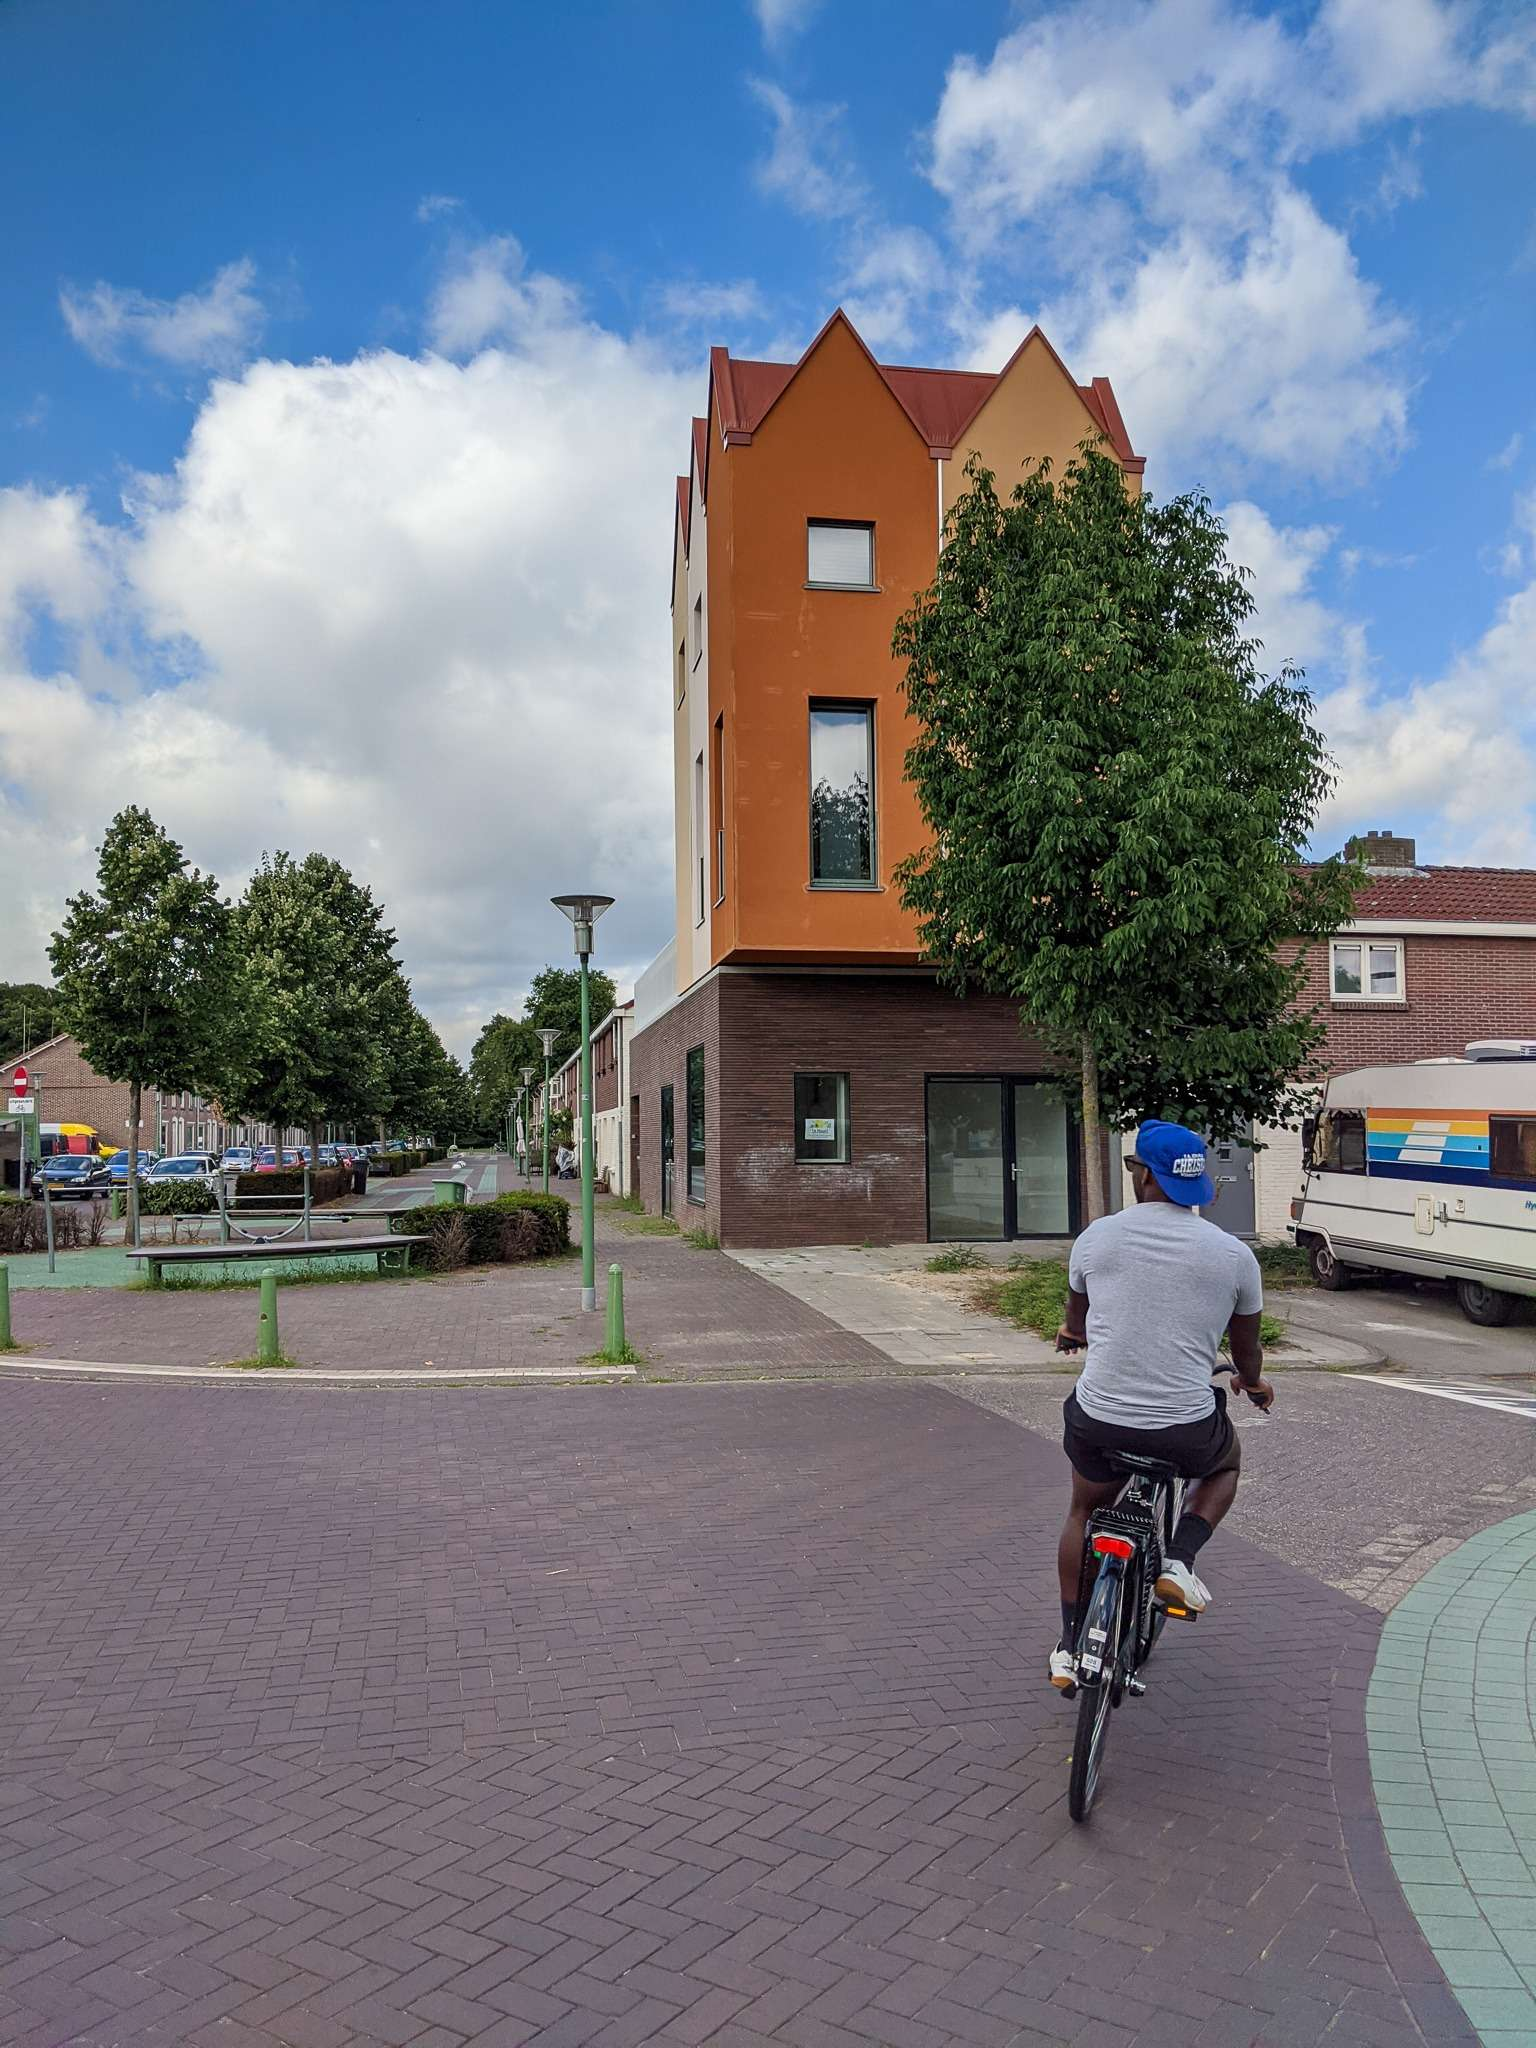 Man in grey t-shirt and blue hat cycles past an interesting orange house in Eindhoven